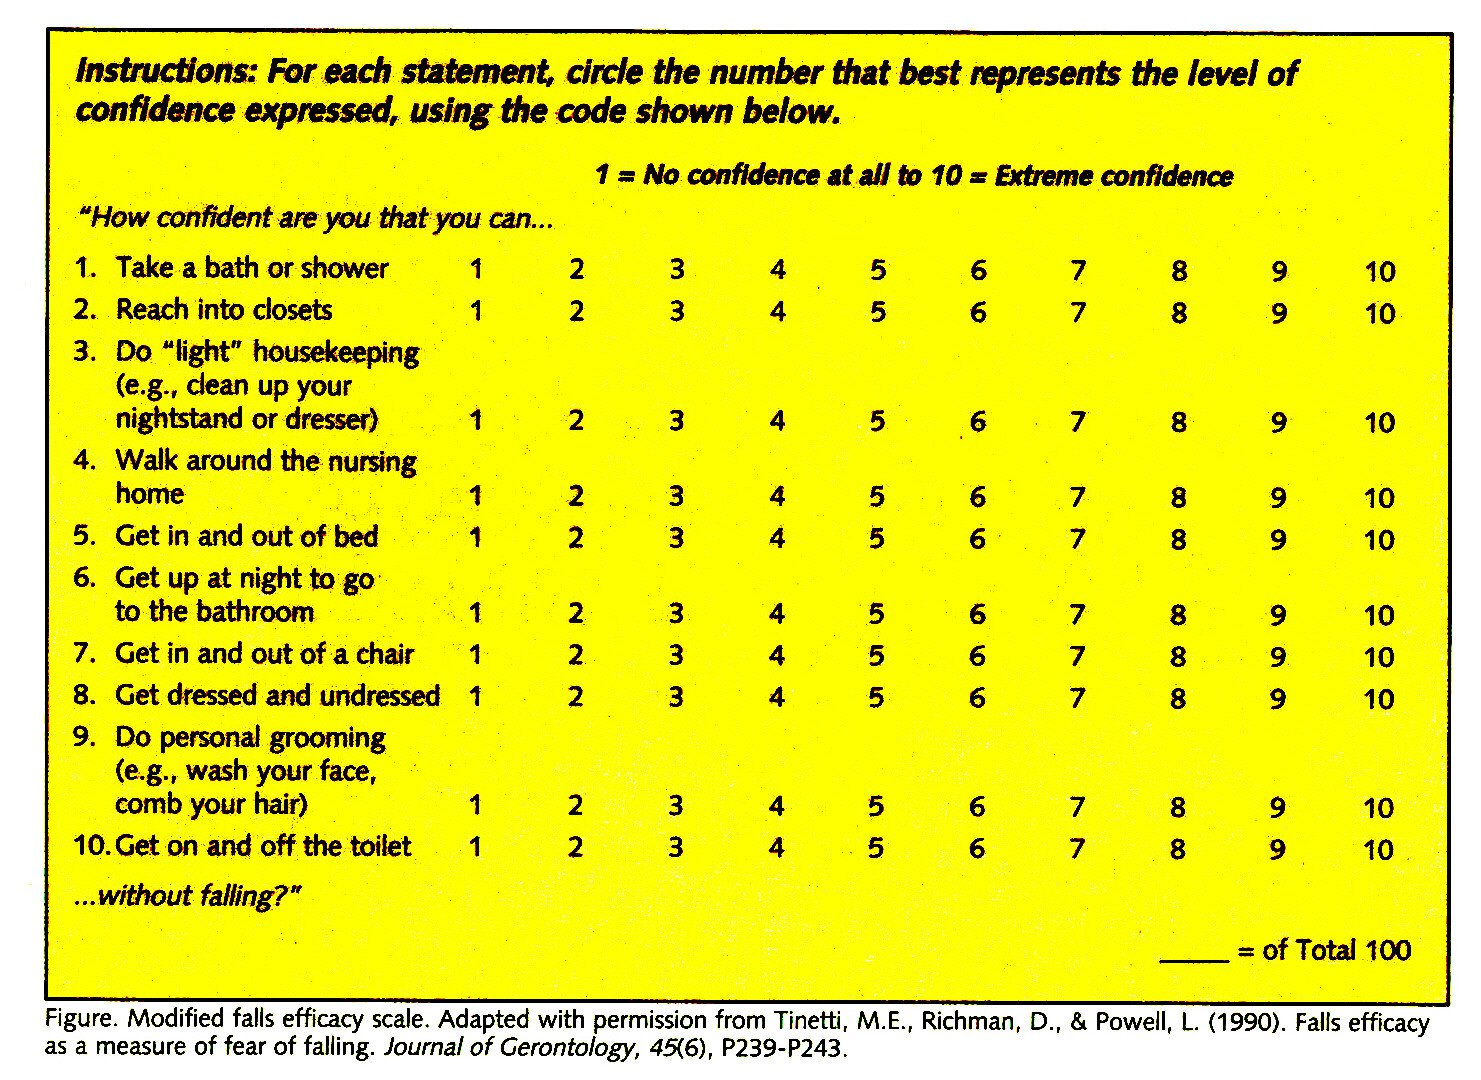 Figure. Modified falls efficacy scale. Adapted with permission from Tinetti, M.E., Richman, D., & Powell, L. (1990). Falls efficacy as a measure of fear of falling. Journal of Gerontology, 45(6), P239-P243.